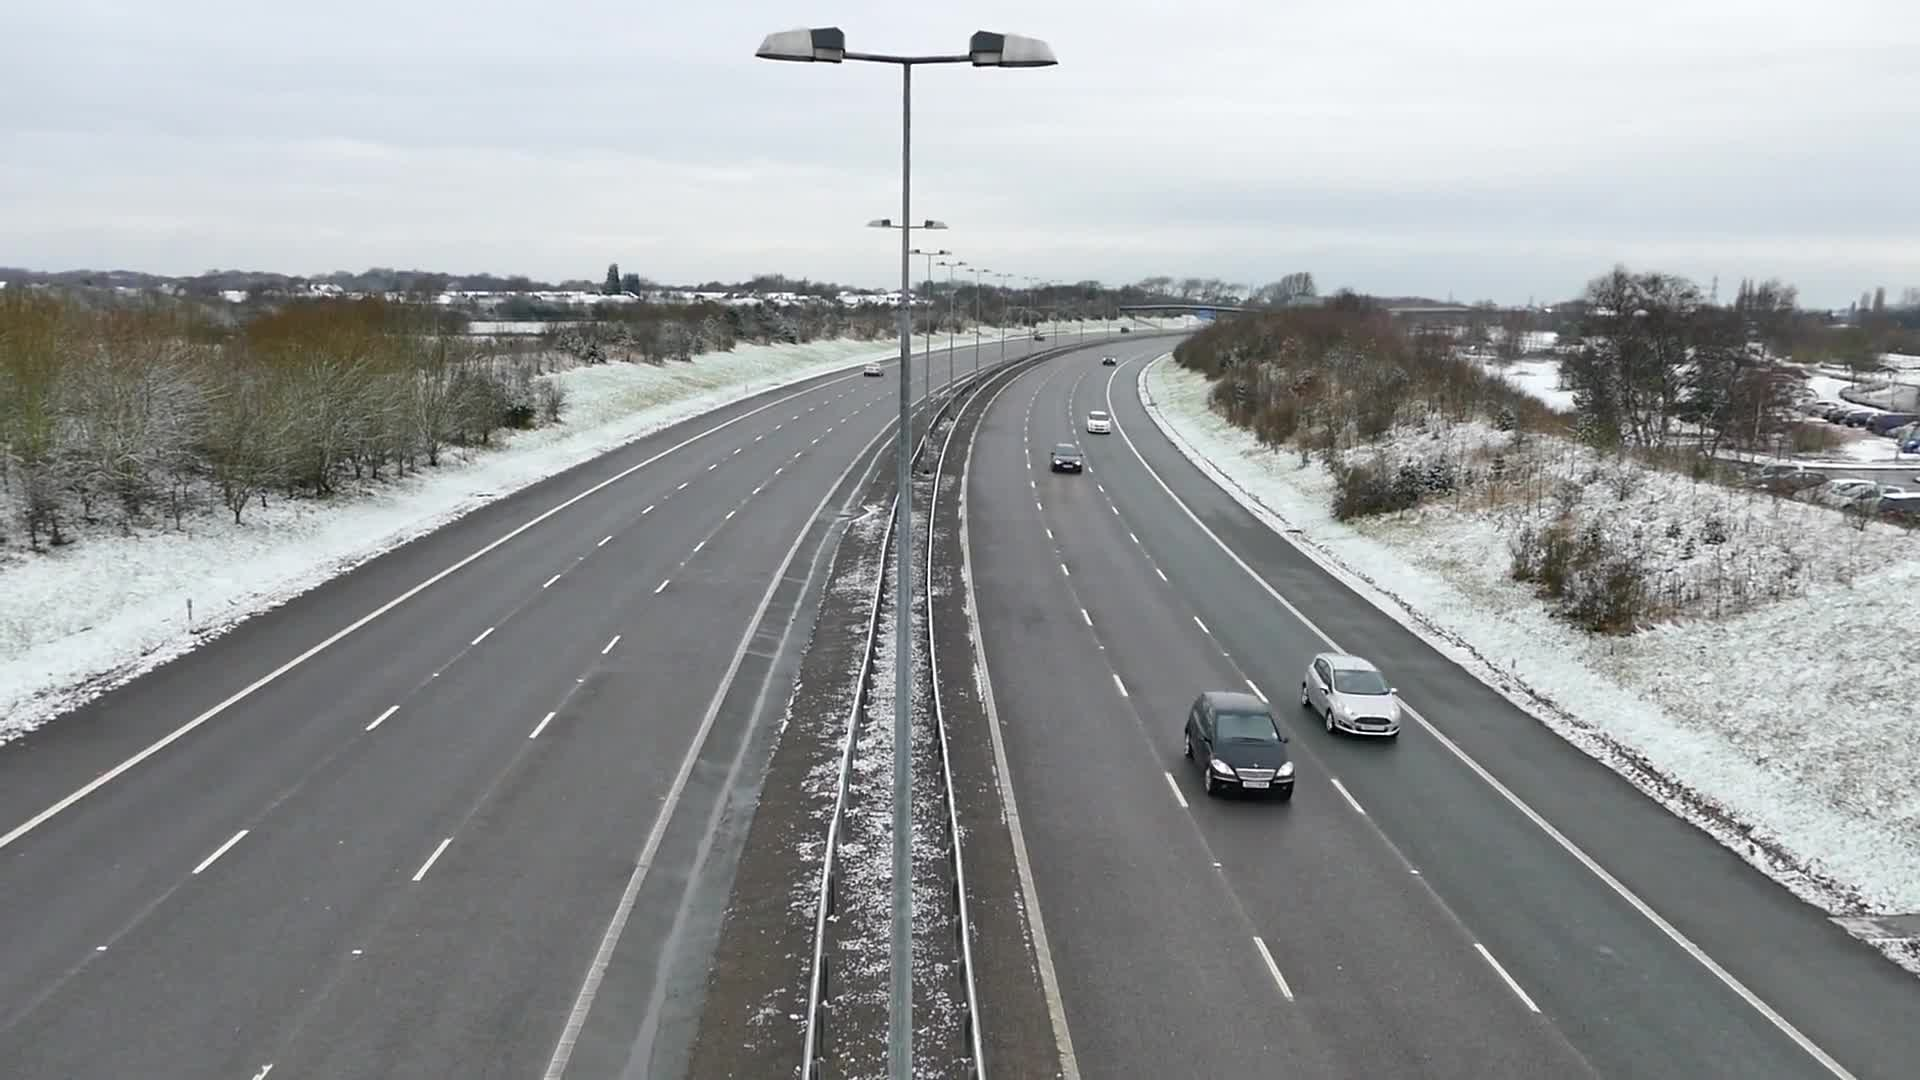 Highway during winter